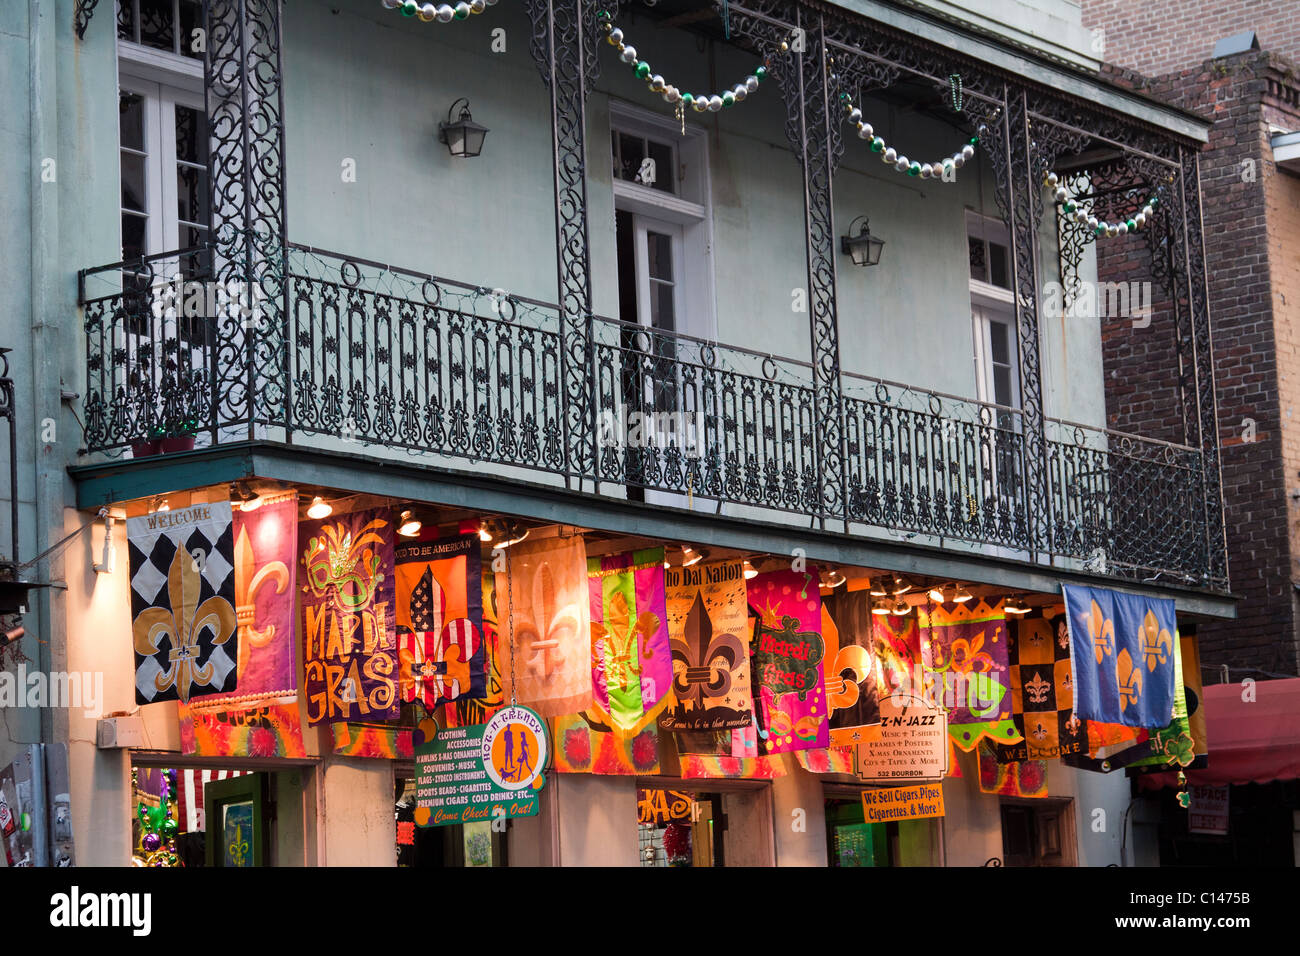 Souvenir shop with bright banners below wrought iron balcony on Bourbon Street in New Orleans - Stock Image